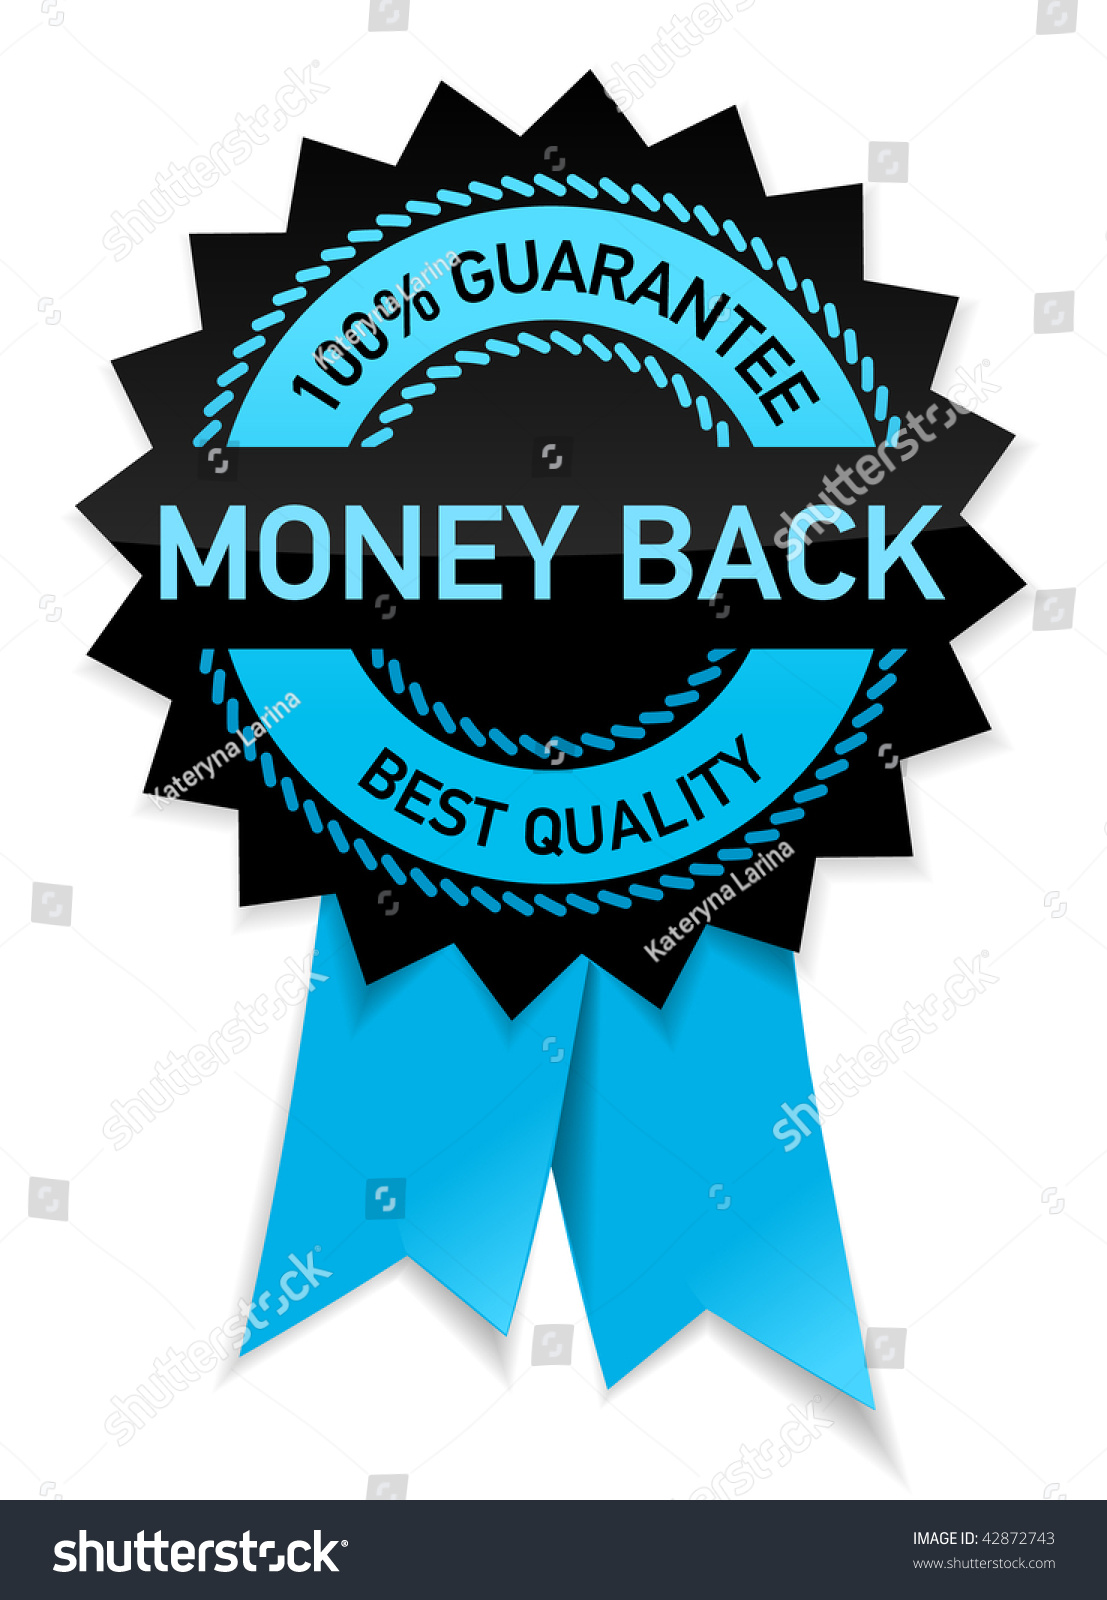 50 Best Back To Front Before After Remodelling Projects: Money Back 100 Guarantee Best Quality Stock Vector